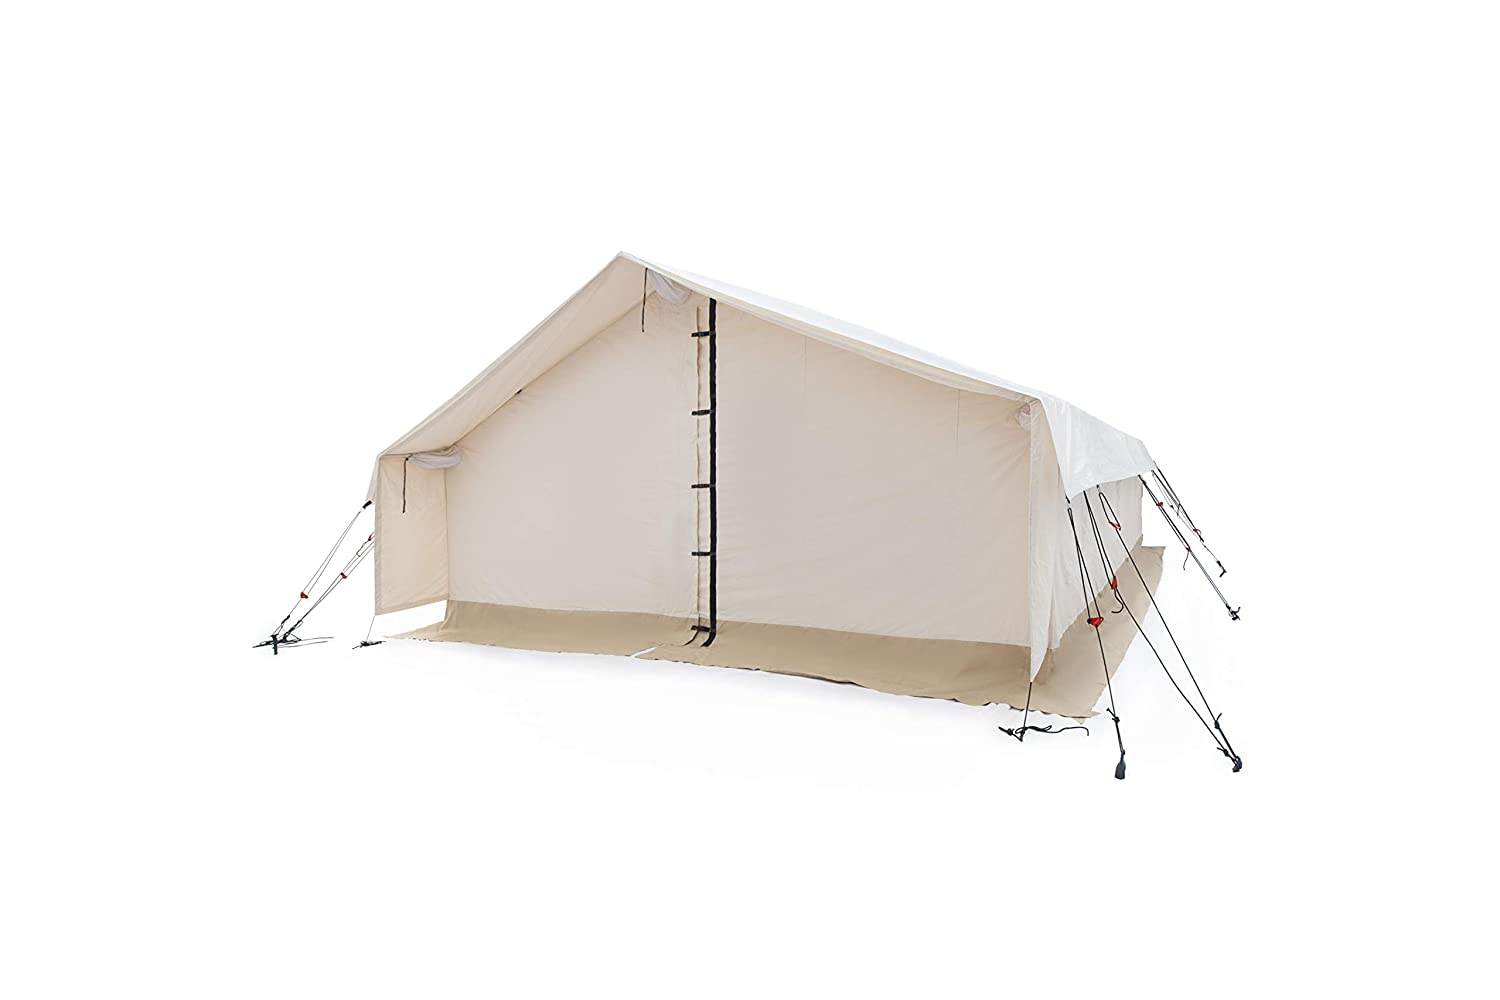 White Duck Outdoors Complete Canvas Wall Tent with Aluminum Frame and PVC Floor for Elk Hunting, Outfitter and Camping